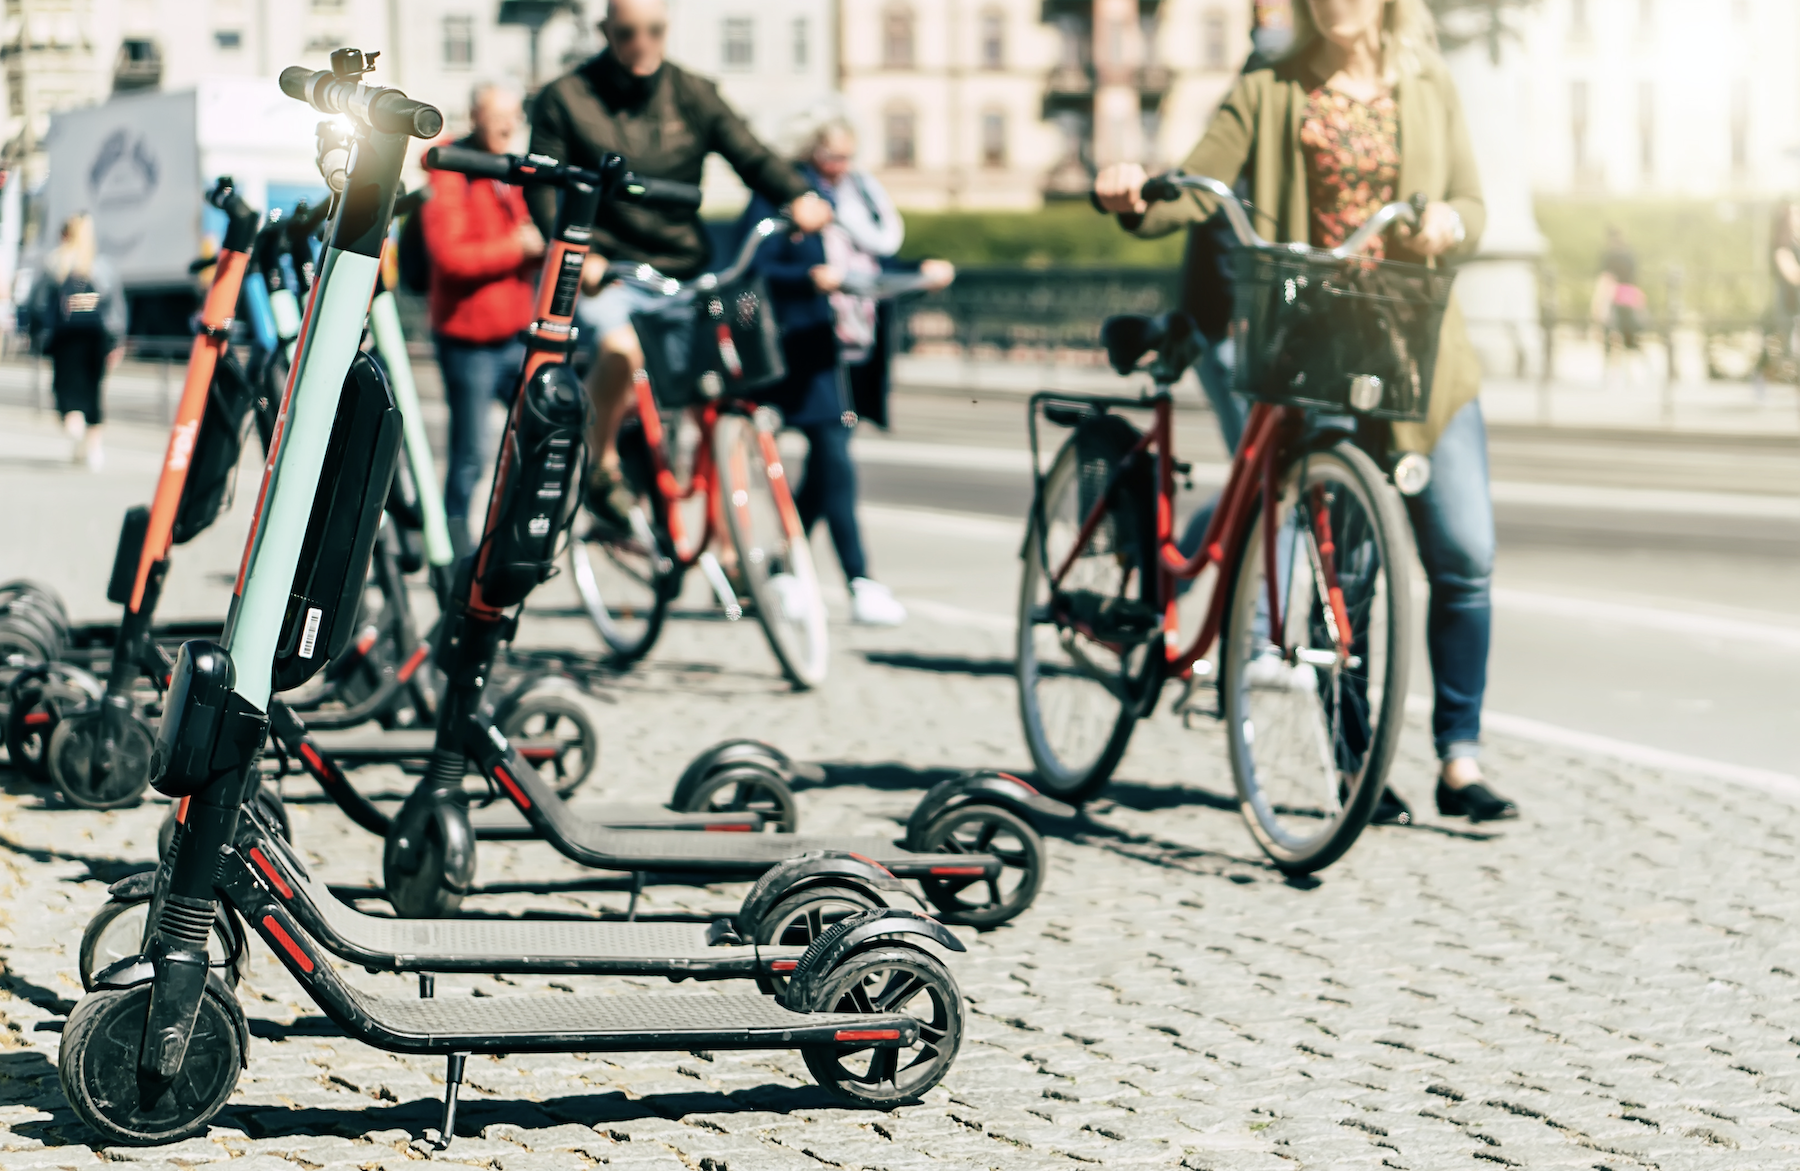 The future of micromobility, shared e-scooters and people with bicycles